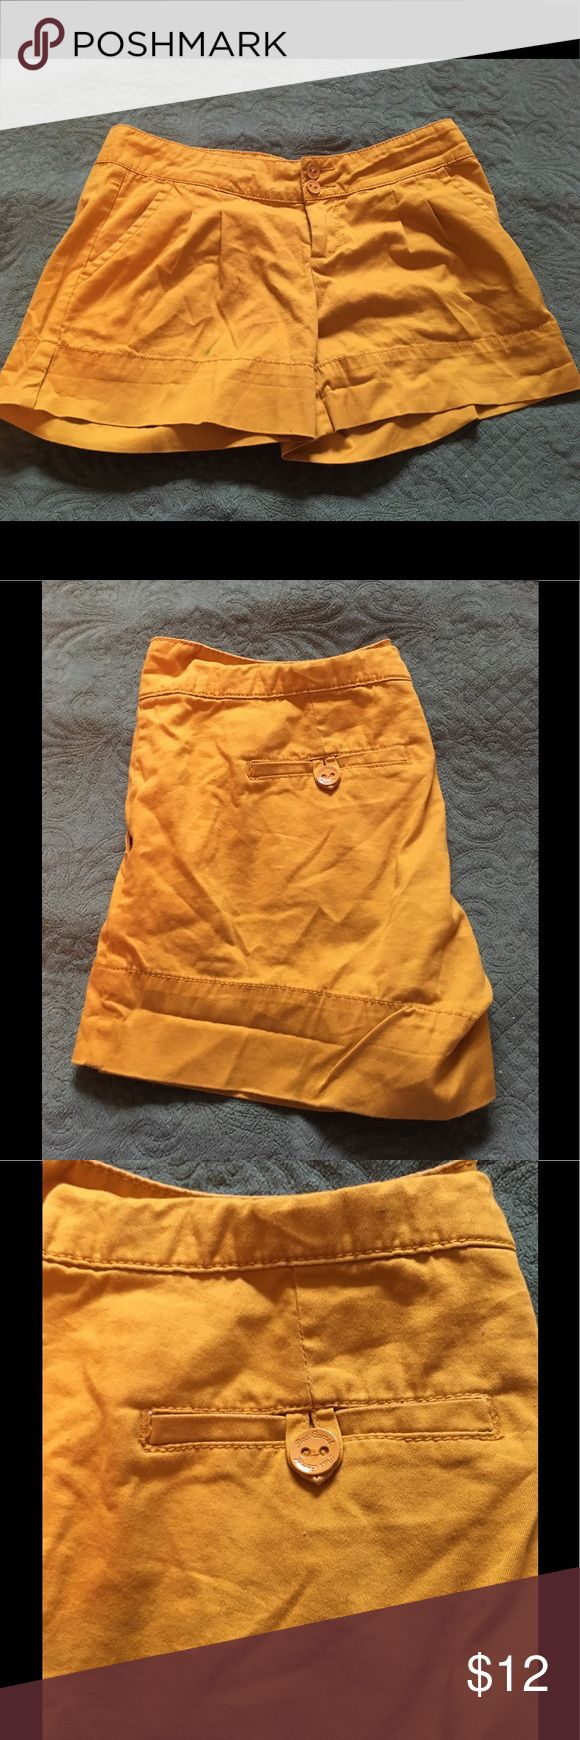 5 for $20 🦋 Red Camel Shorts size 9 Red Camel shorts size 9. These are so cute and will be wonderful for your summer wardrobe. Pretty dank yellow color. Red Camel Shorts Bermudas